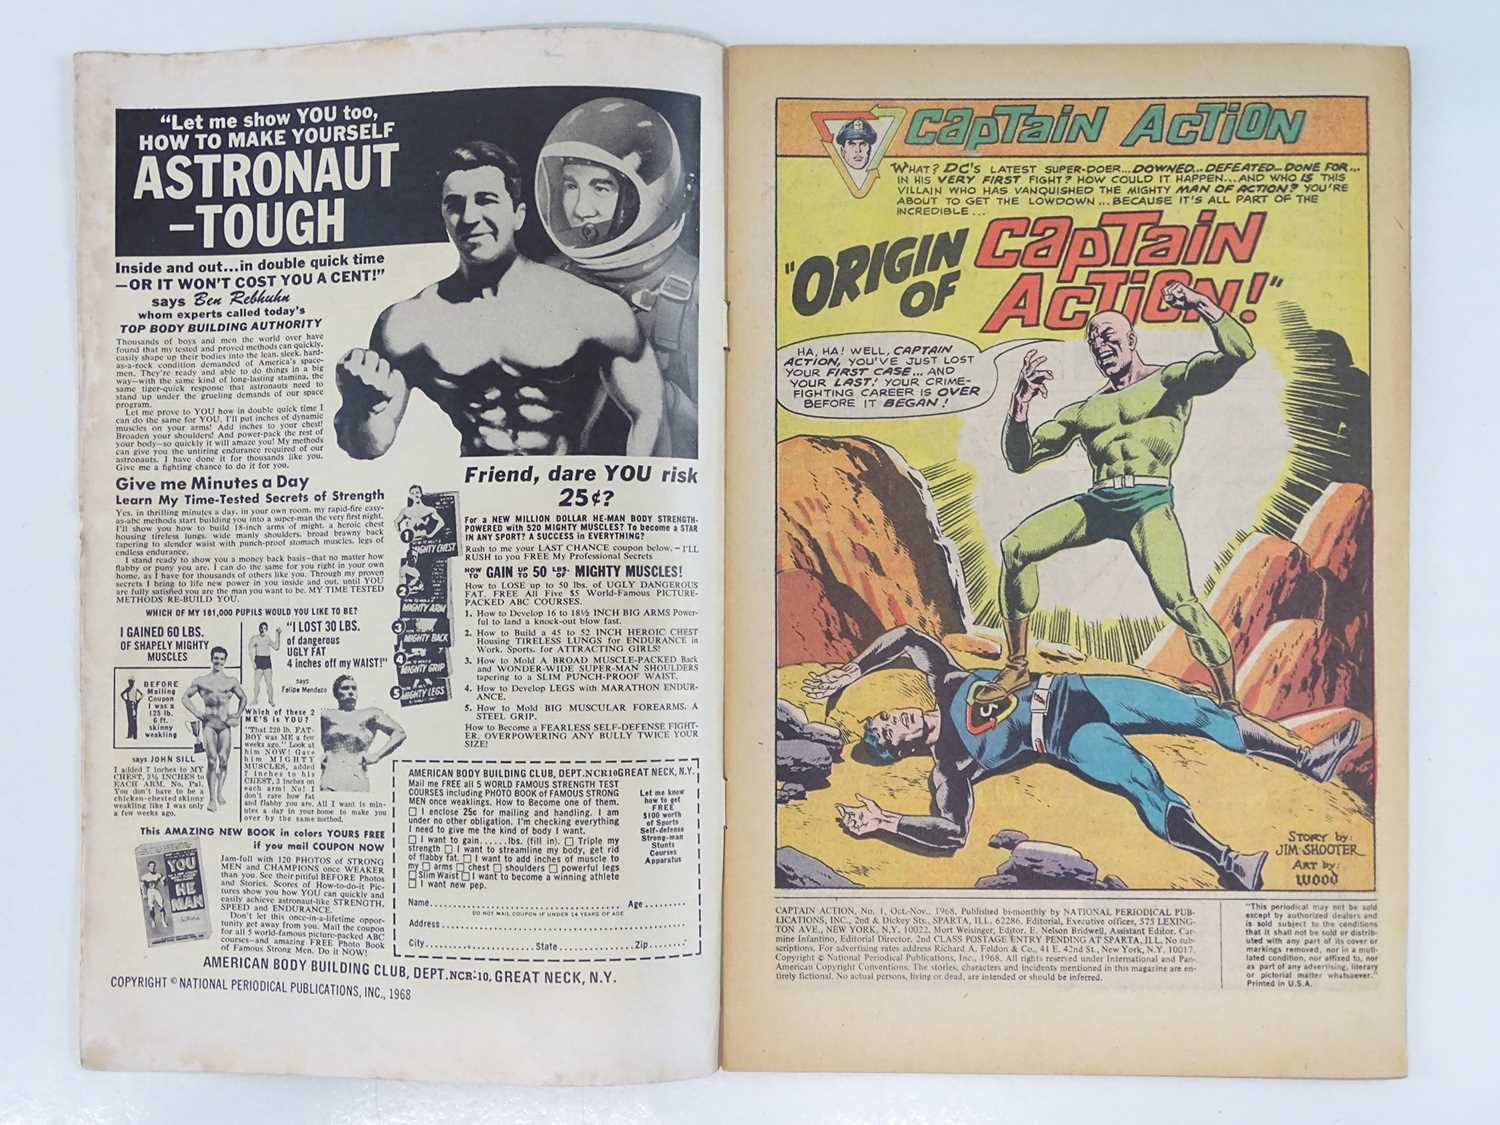 CAPTAIN ACTION #1 - (1968 - DC - UK Cover Price) - Origin and First DC comic book appearance of - Image 3 of 9